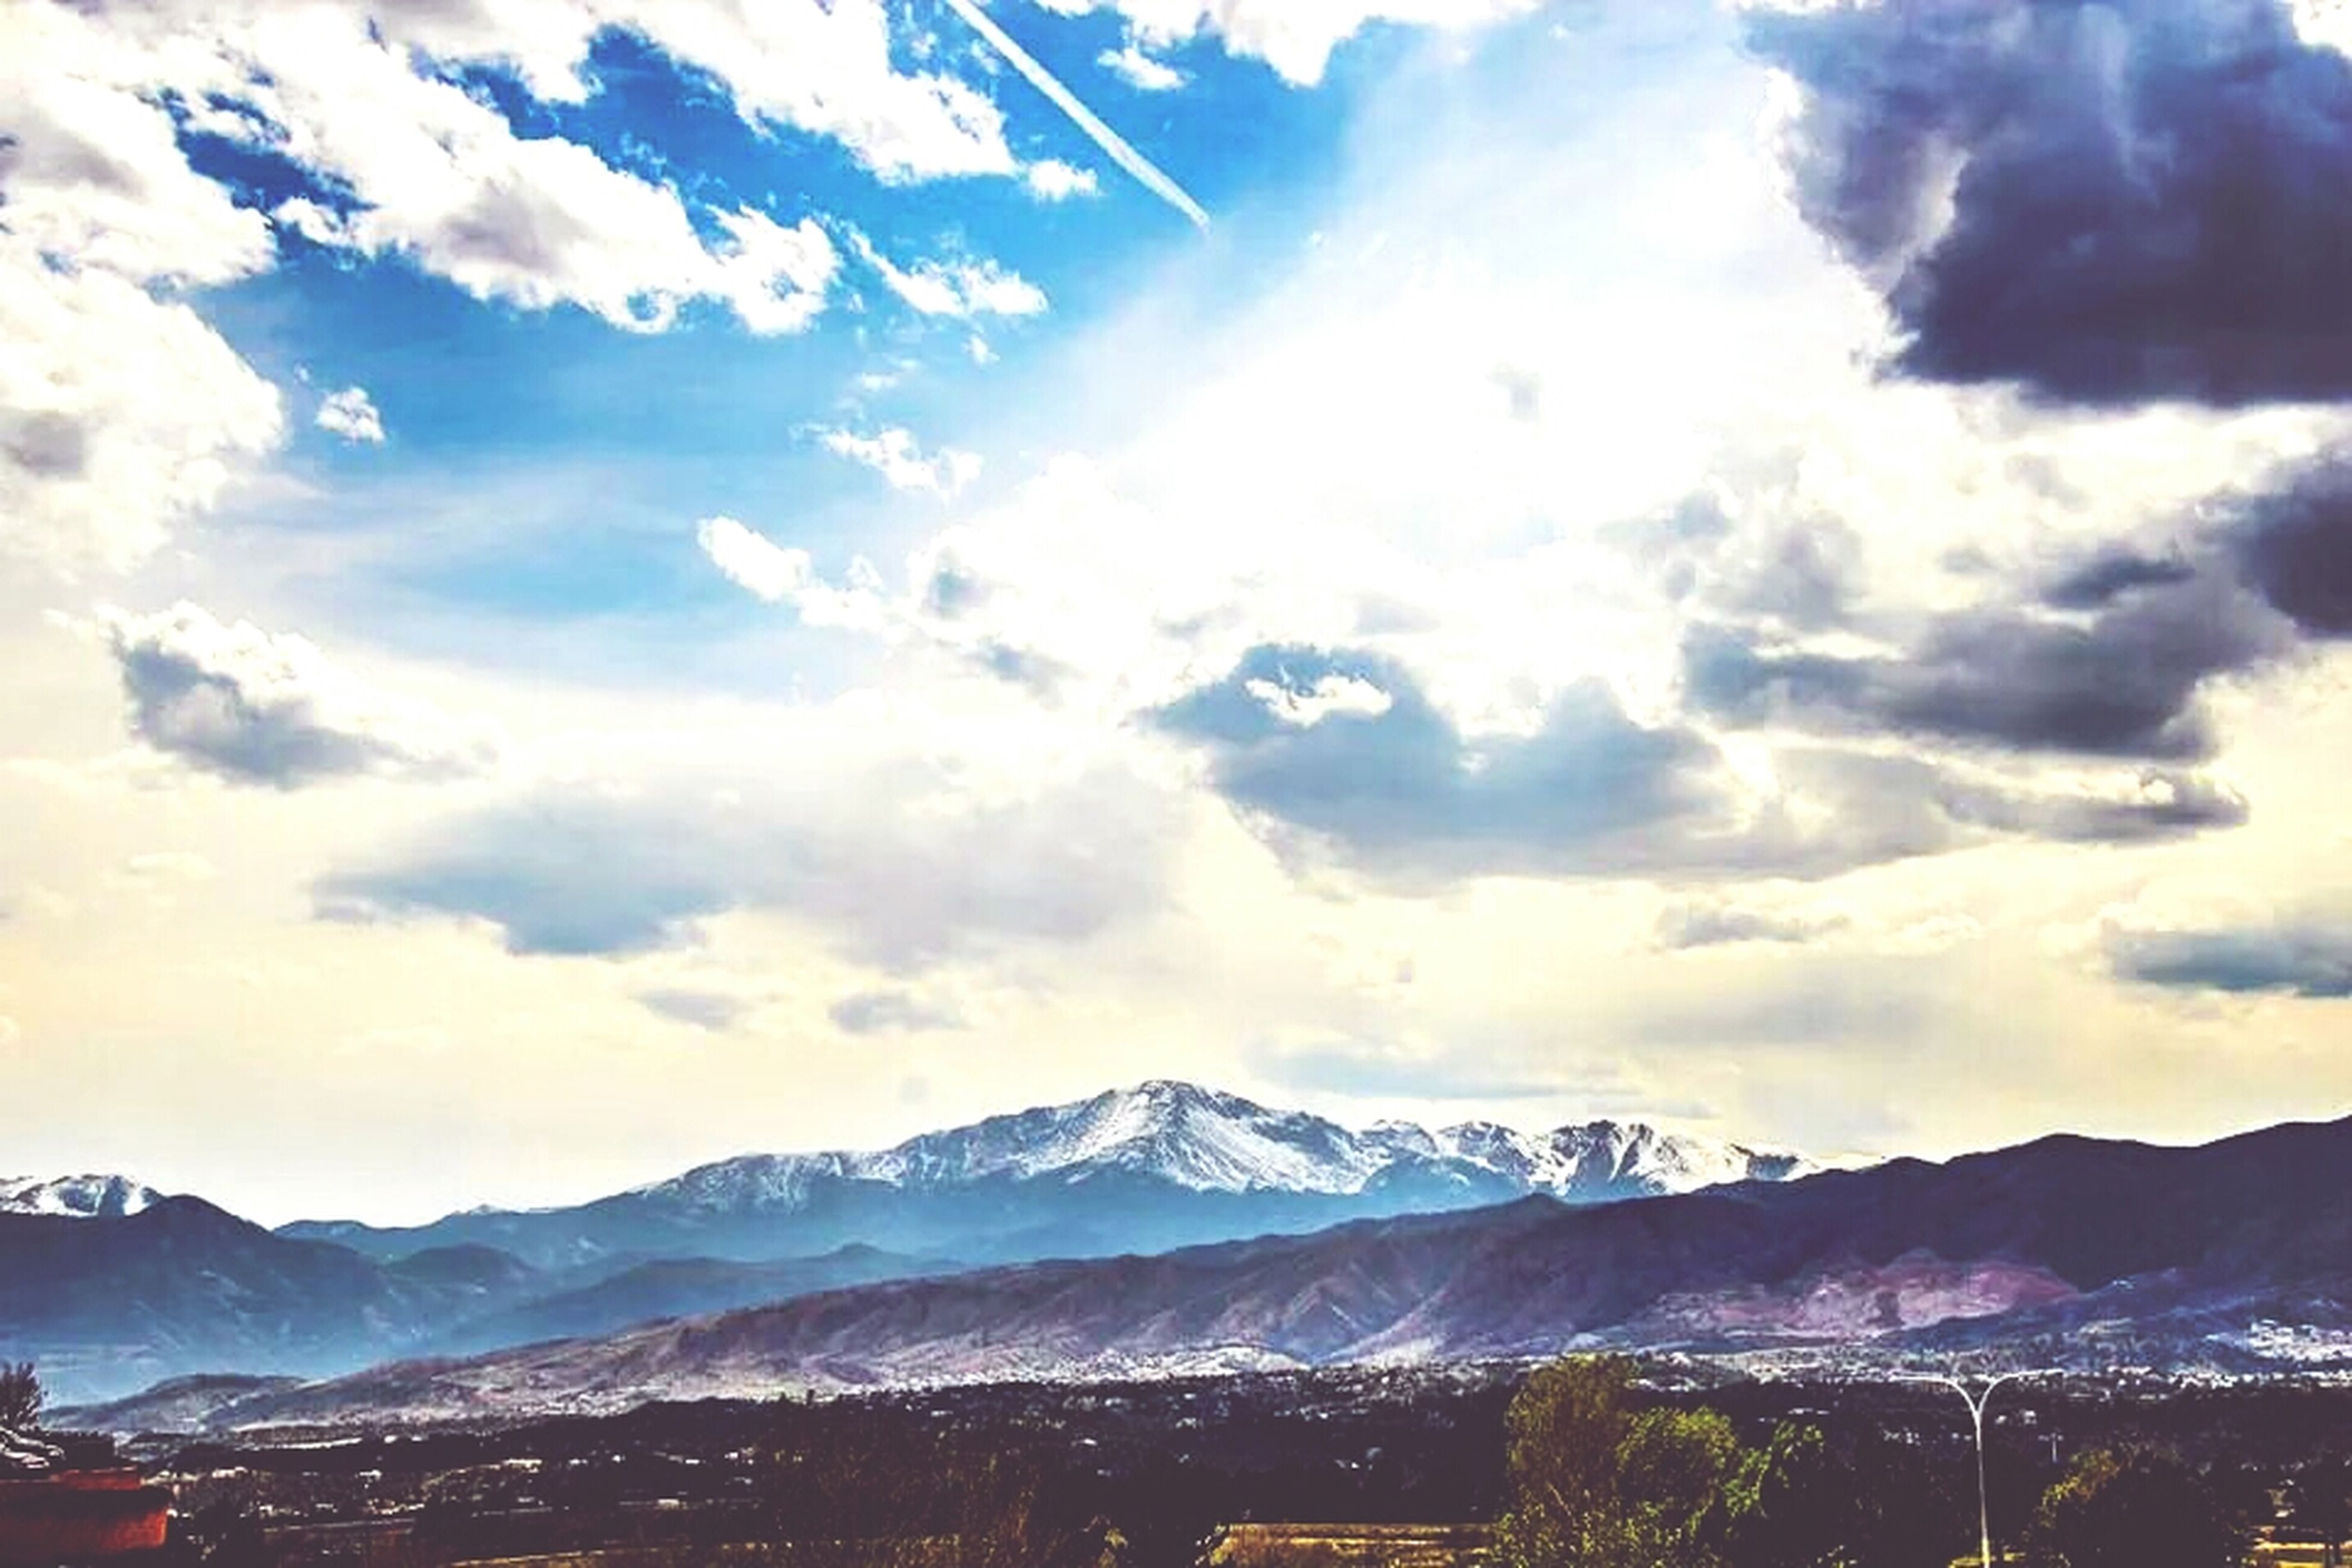 mountain, mountain range, snow, winter, scenics, tranquil scene, cold temperature, beauty in nature, sky, snowcapped mountain, tranquility, landscape, cloud - sky, nature, weather, season, non-urban scene, cloud, idyllic, covering